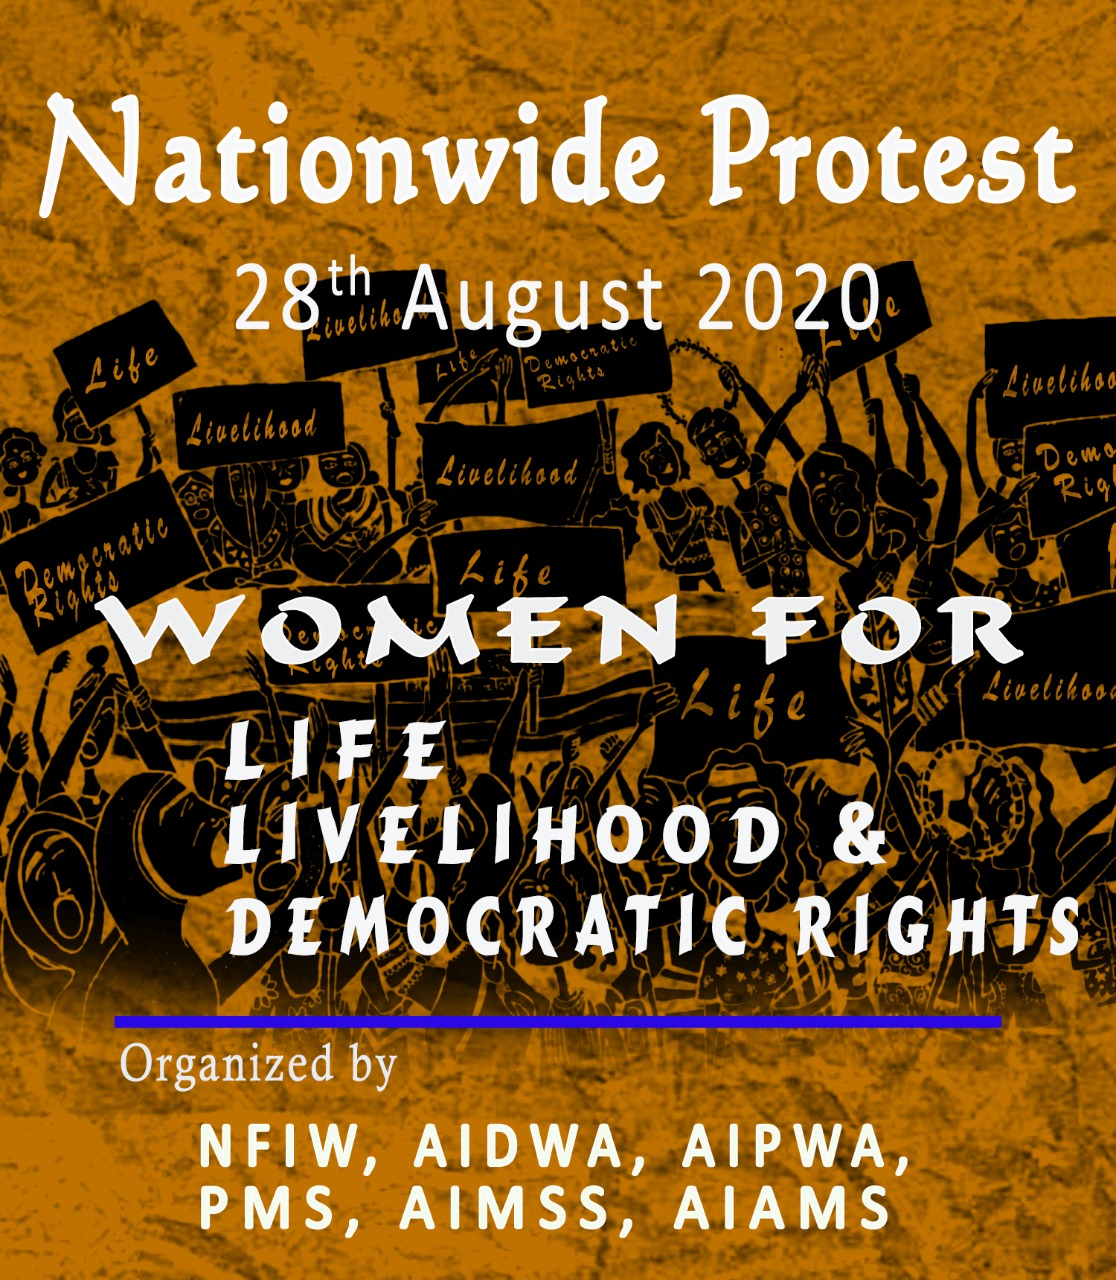 WOMEN FOR LIFE, LIVELIHOOD& DEMOCRATIC RIGHTS Call for Nationwide Proteston 28th August 2020